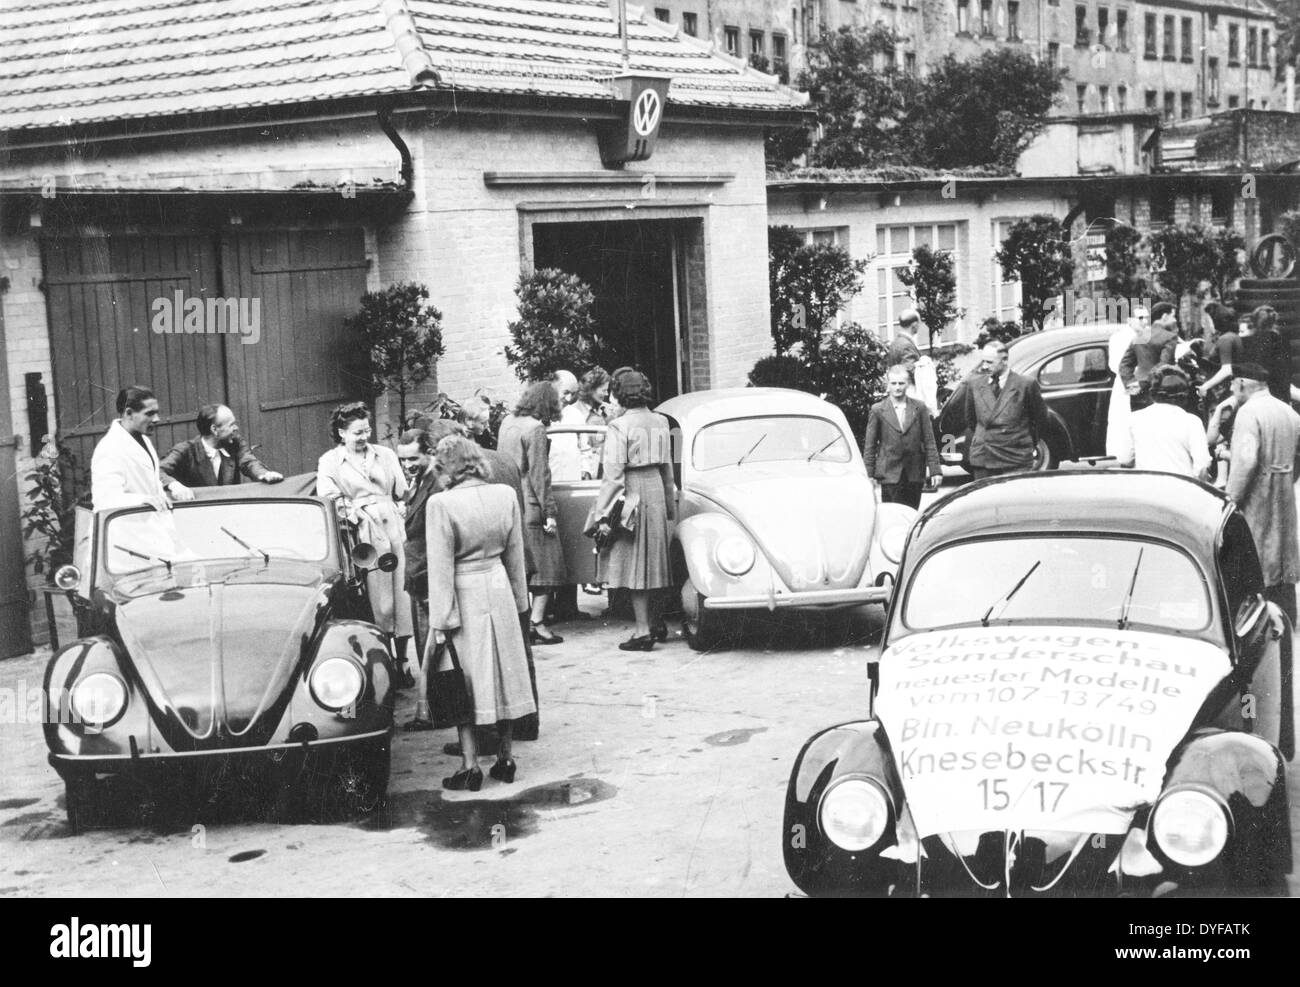 A special exhibition of VW automobiles on Knesebeck-Strasse in West Berlin, July 1949. Photo: Agentur Voller Ernst - NO WIRE SERVICE - Stock Image